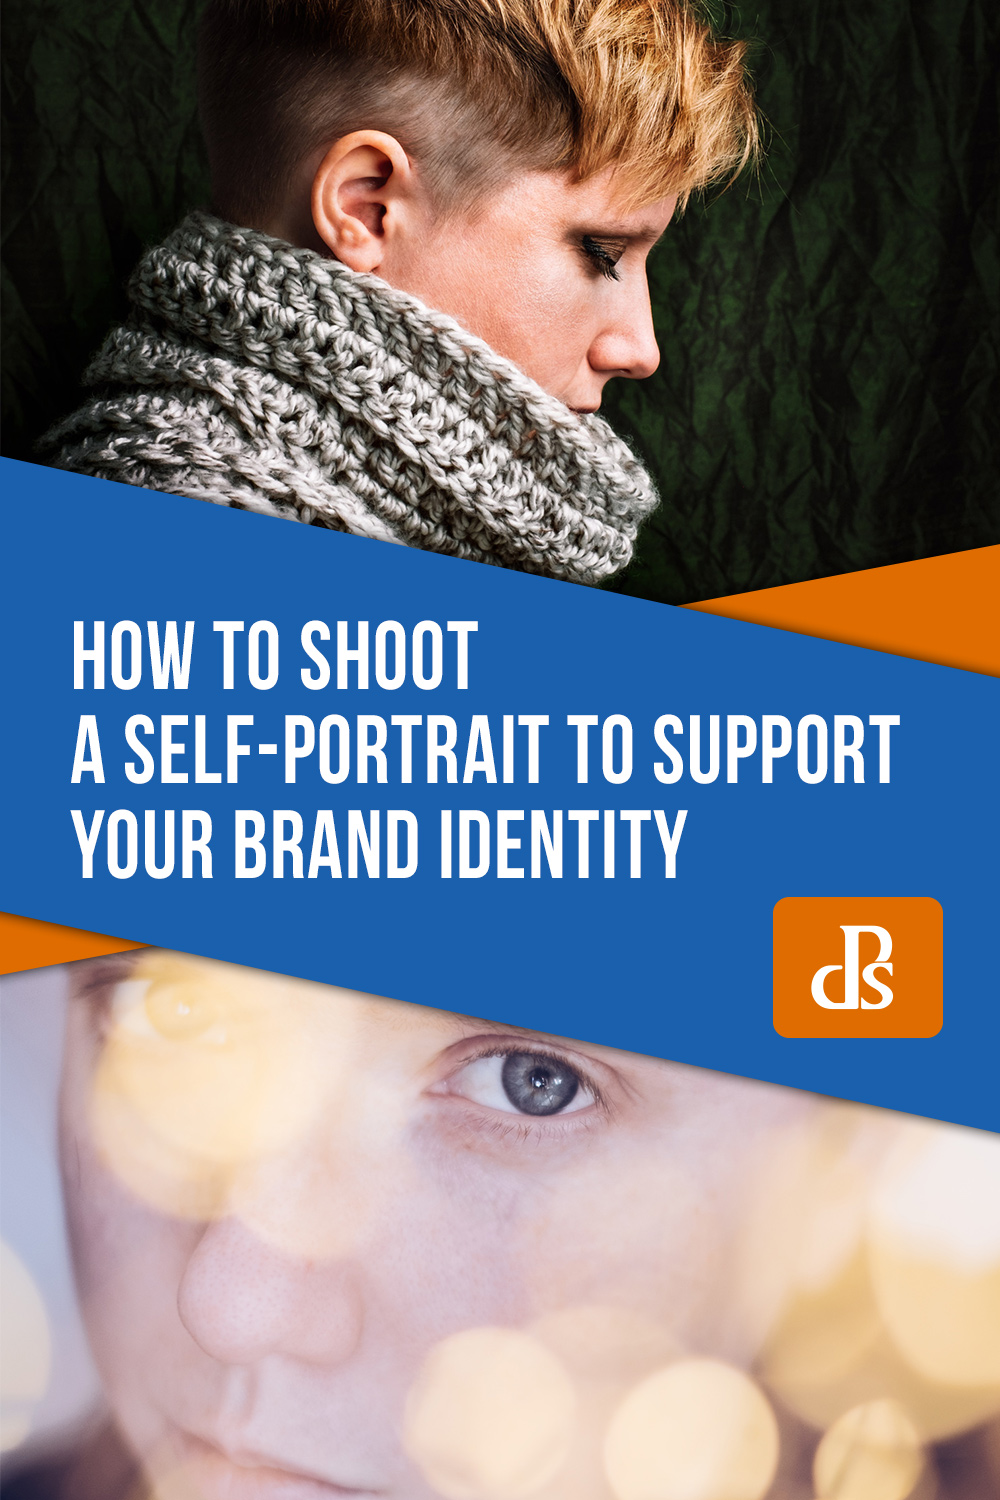 How-to-Shoot-a-Self-Portrait-to-Support-your-Brand-Identity